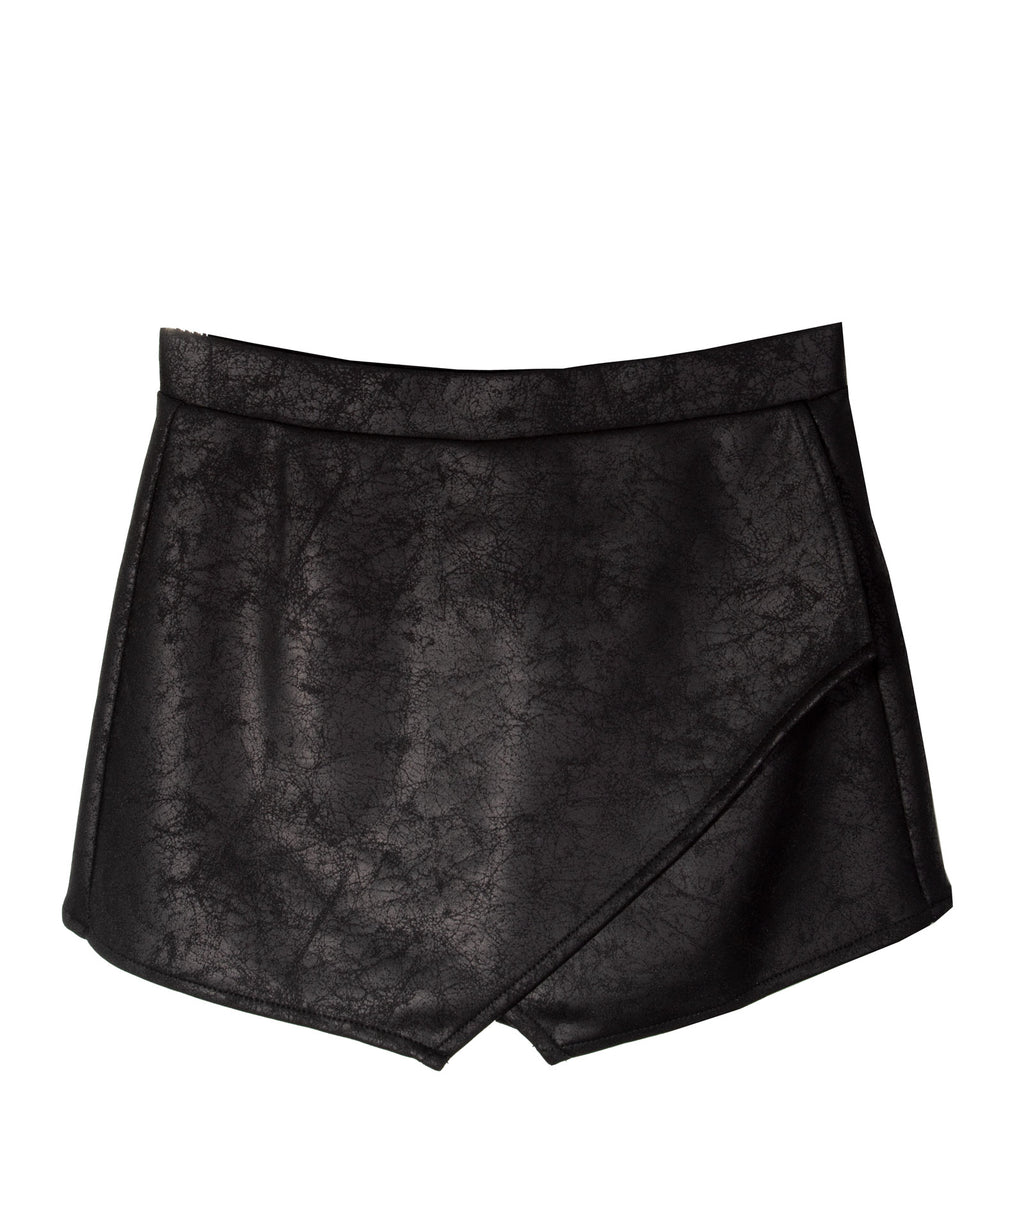 By Debra Girls Black Envelope Leather Skirt